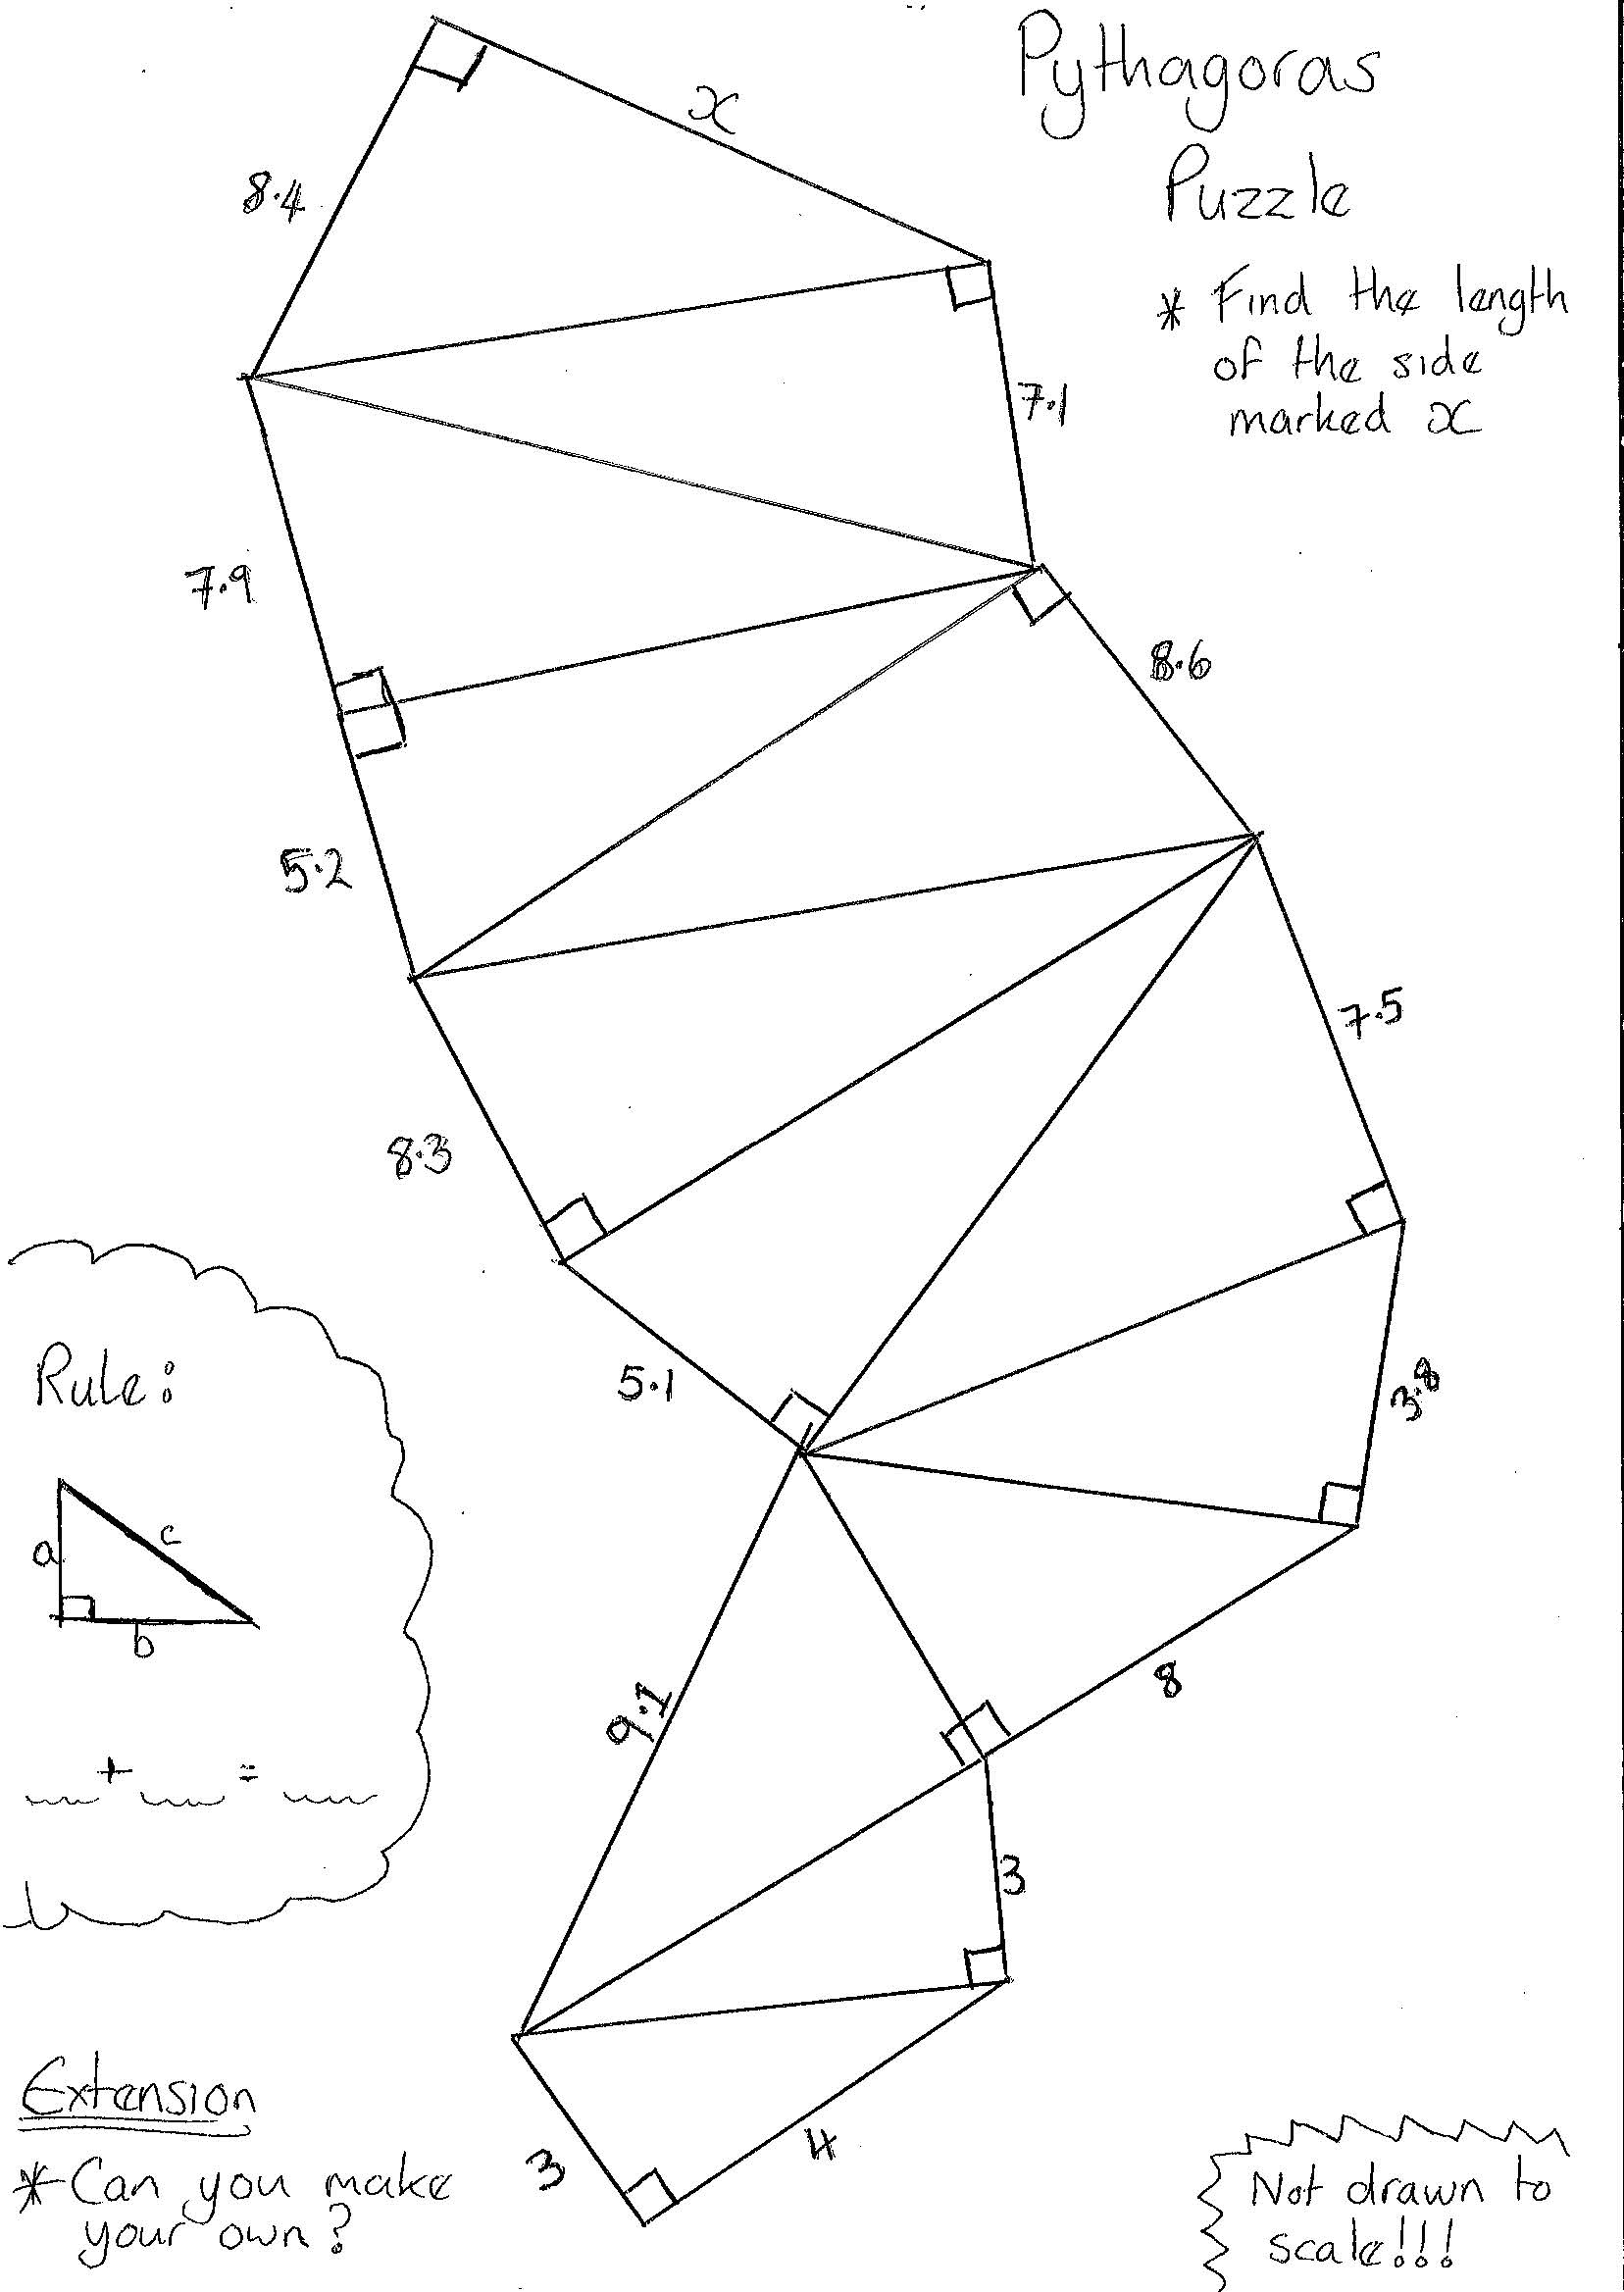 How To Get A Point That Makes A Fixed Angle To Segment